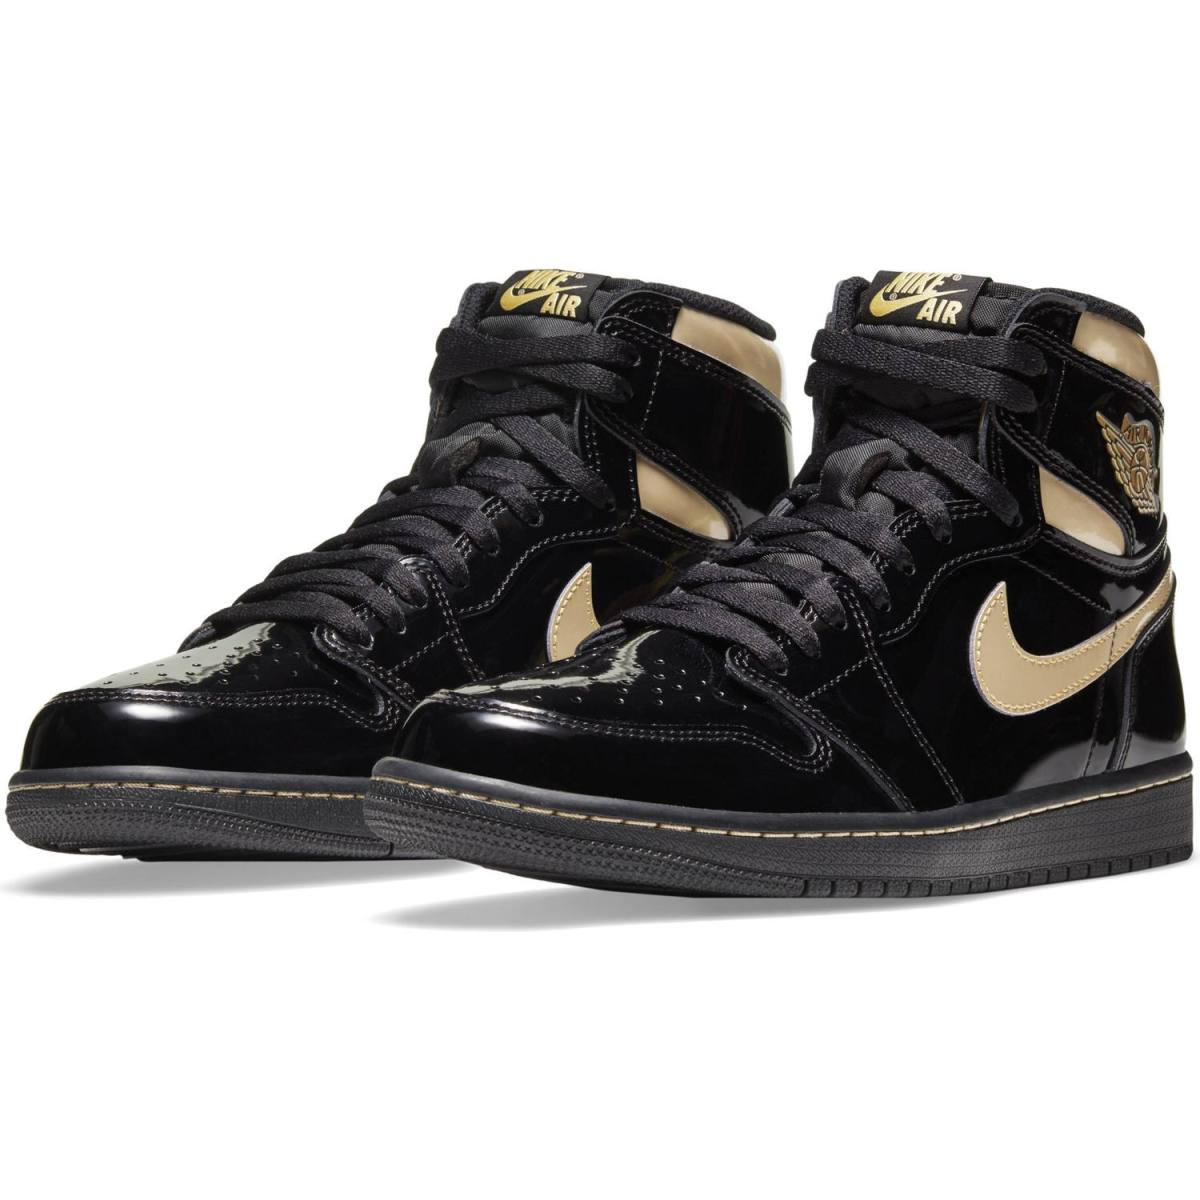 Jordan 1 Retro High Og Black & Gold